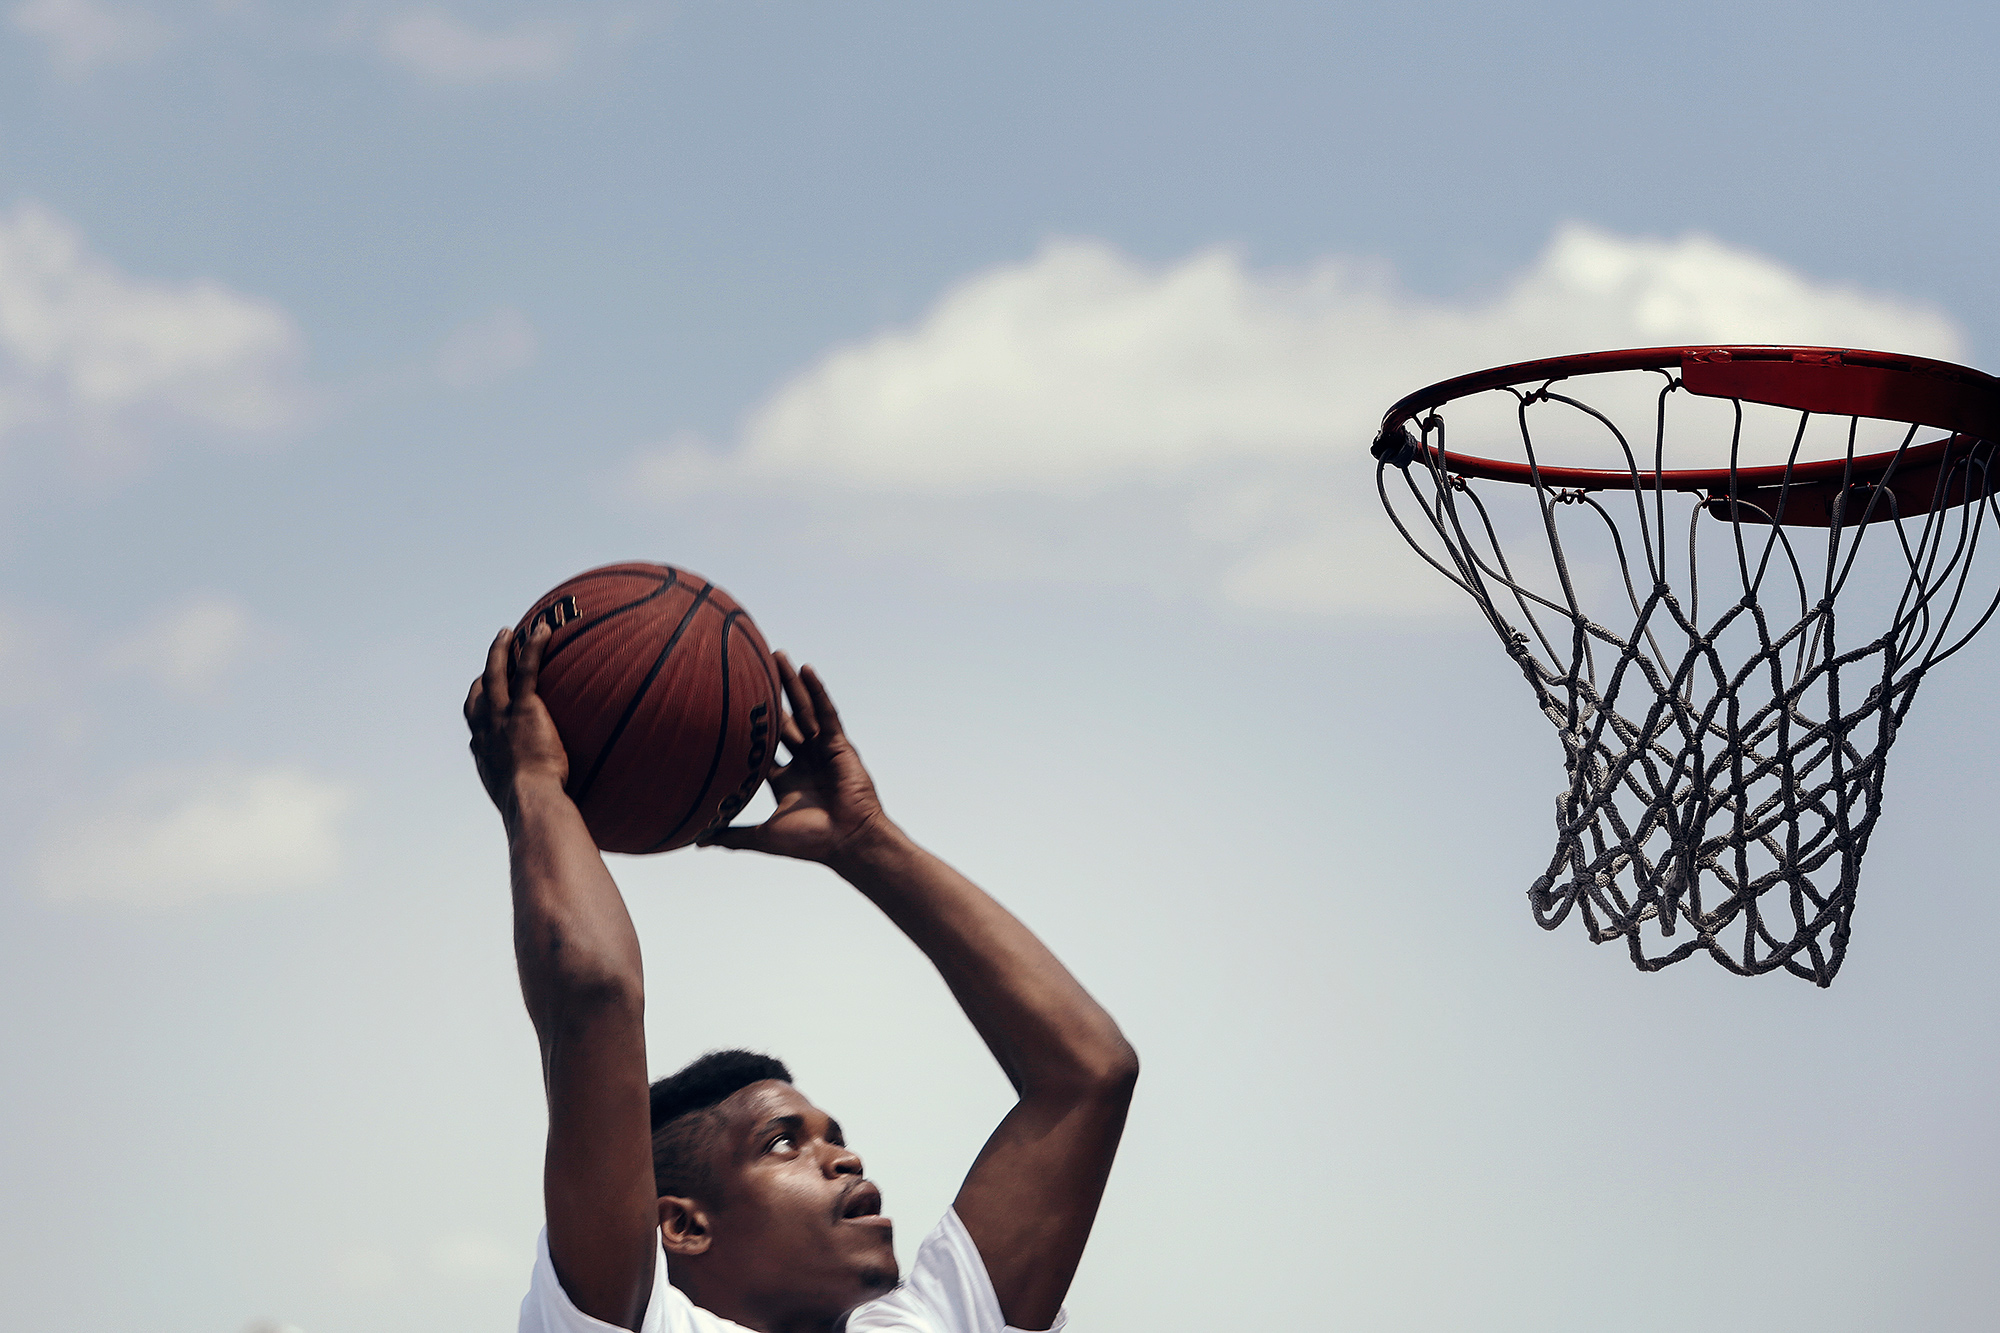 A street ball player goes up for a dunk, photographed by lifestyle photographer, Todd Spoth.